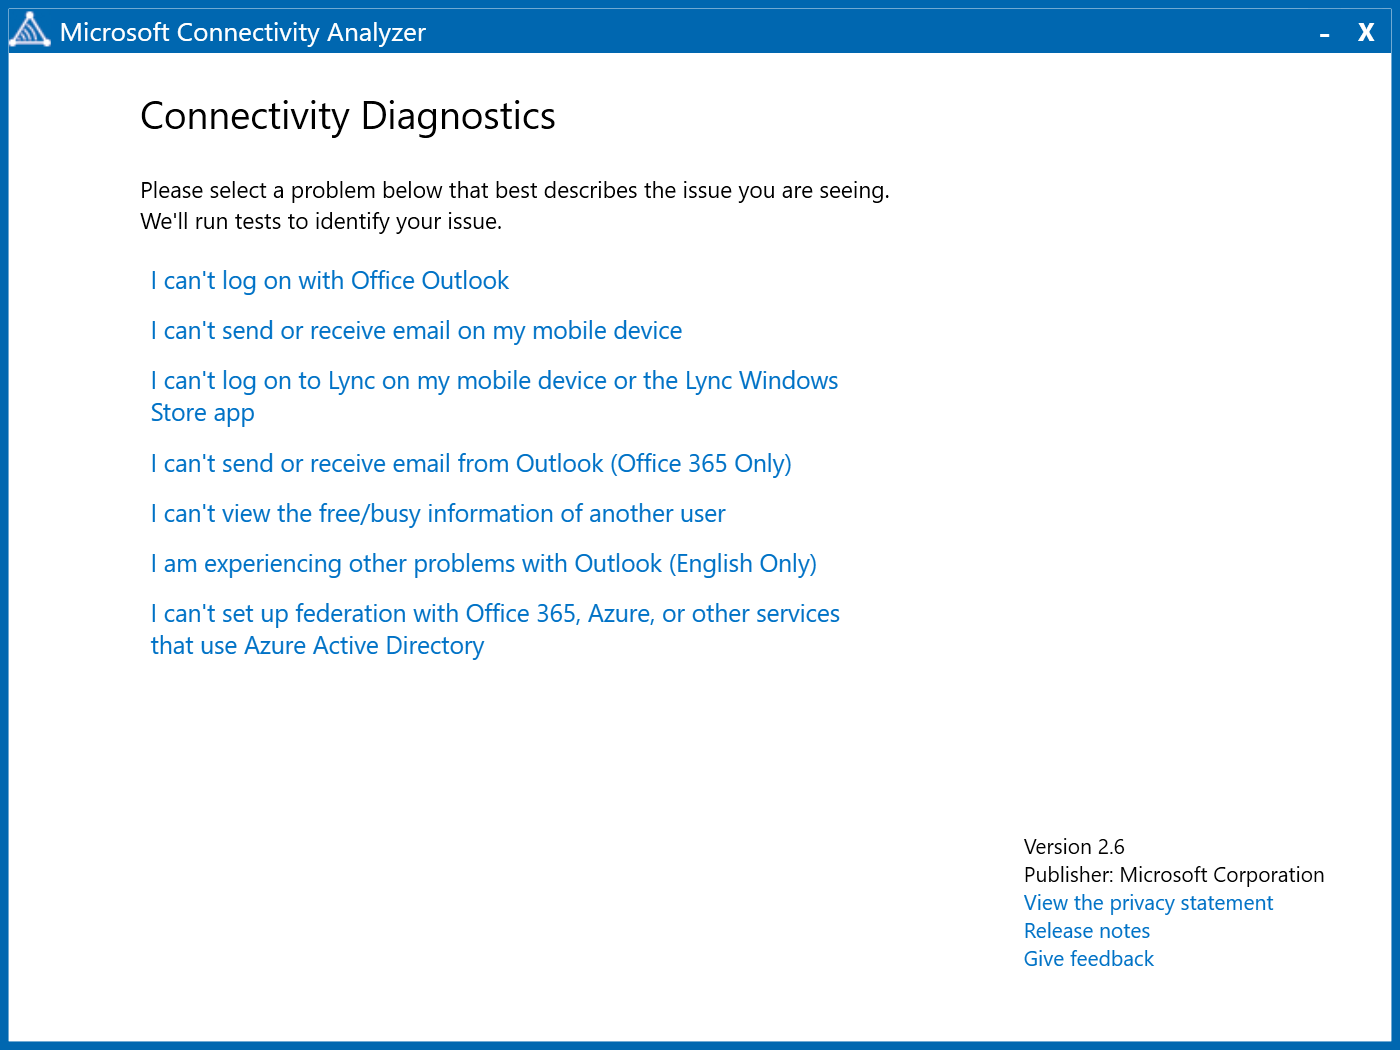 Launch Microsoft Connectivity Analyzer After Installation